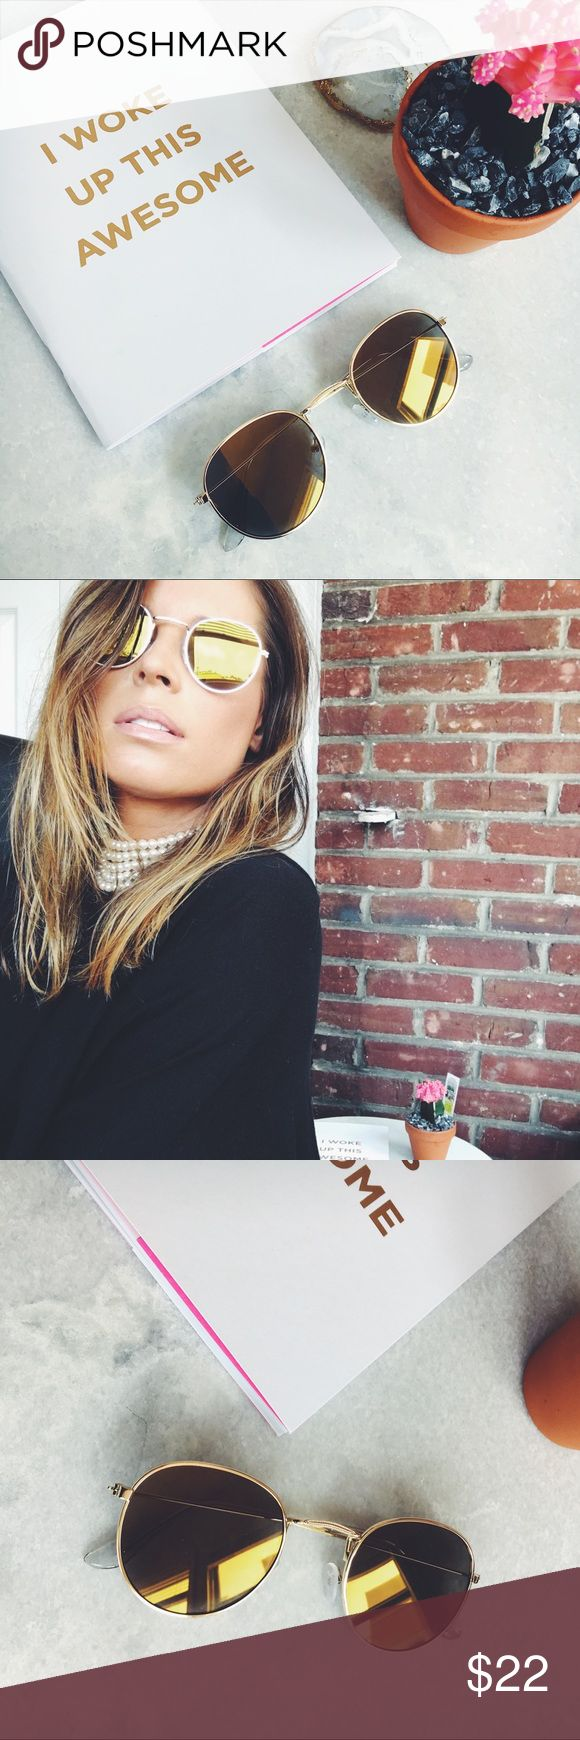 🆕Kiley Gold Mirrored Round Aviator Sunnies New Boutique Item. amqn Accessories Sunglasses